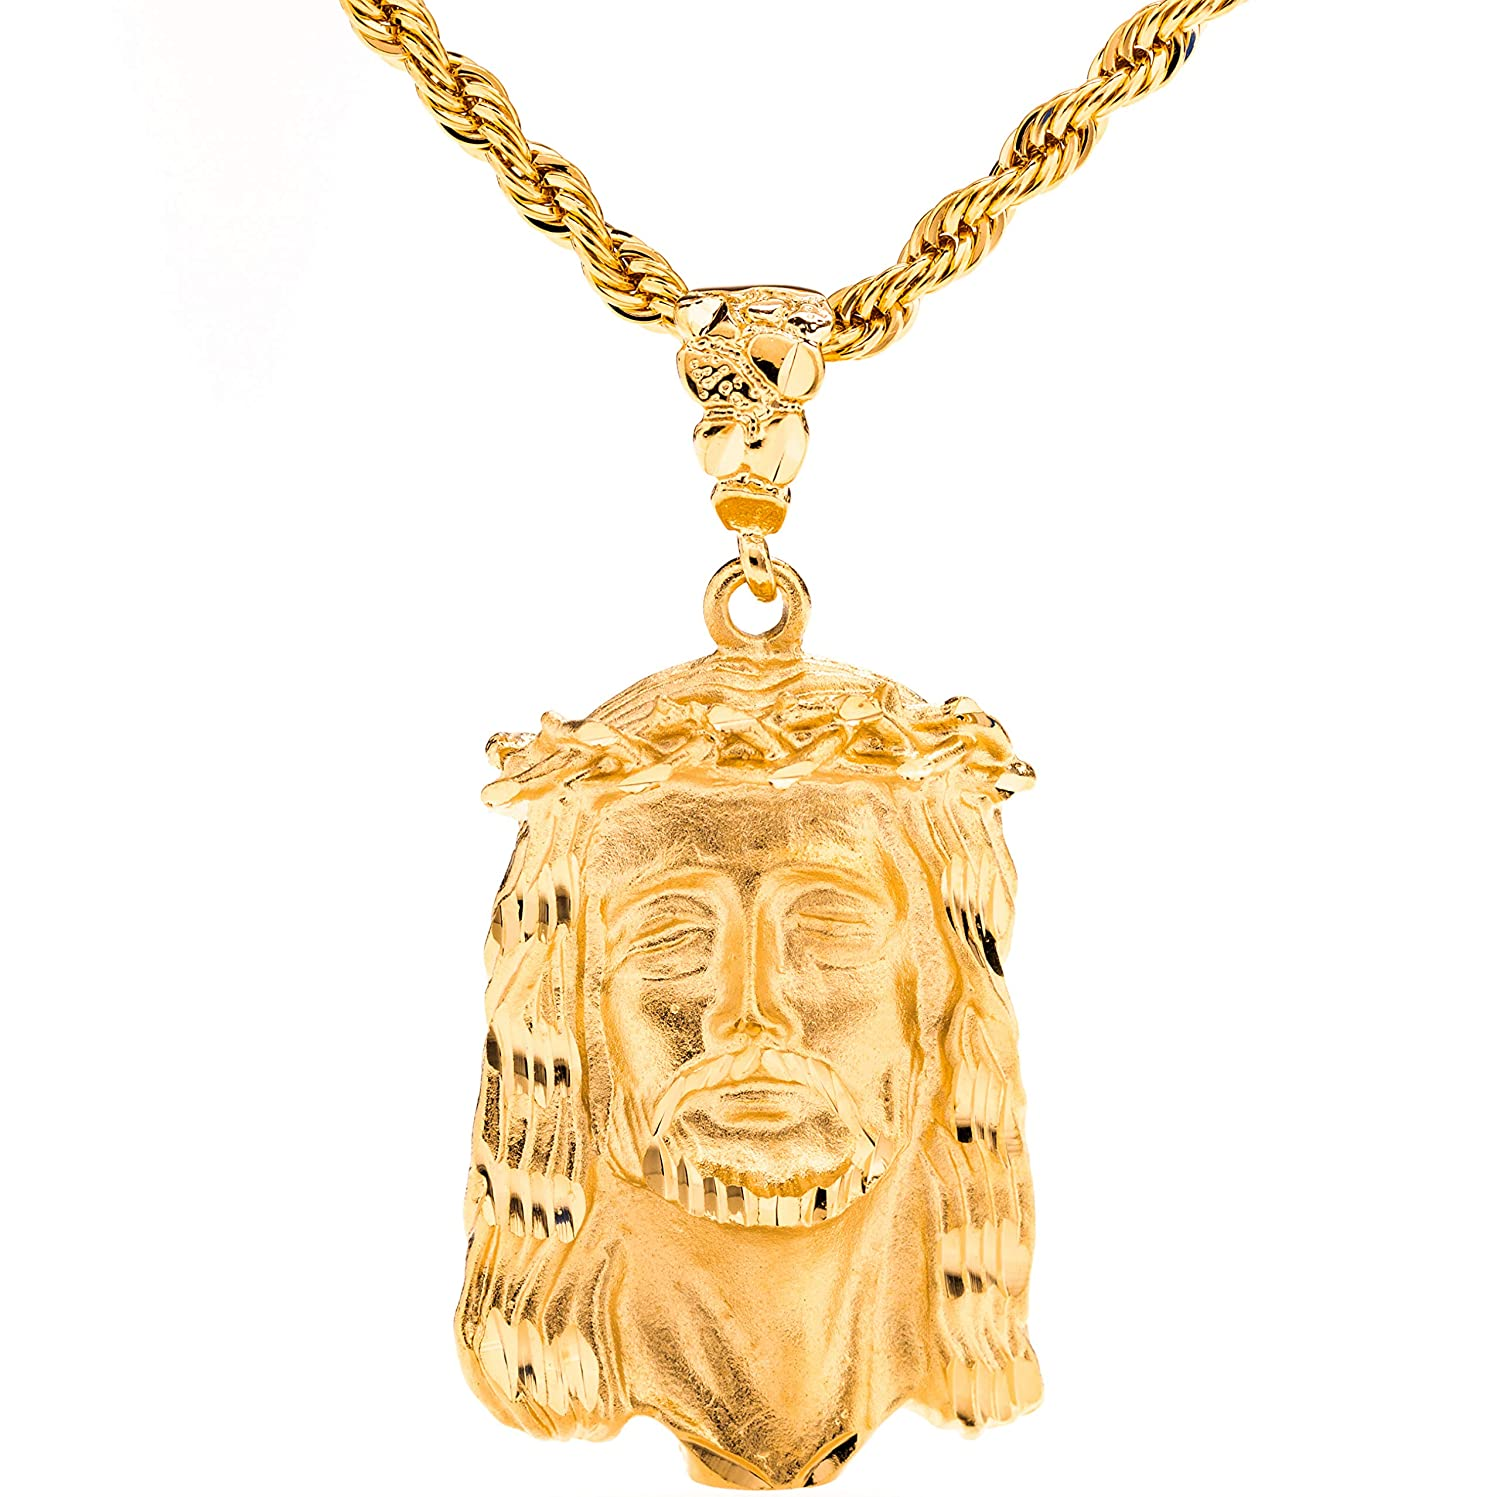 """Lifetime Jewelry Jesus of Nazareth [ Face of Christ Pendant ] 20X More 24k Real Gold Plating Than Other Fashion Necklaces - with or without CZ Stones on 20"""" Chain - Free Lifetime Replacement Guarantee"""